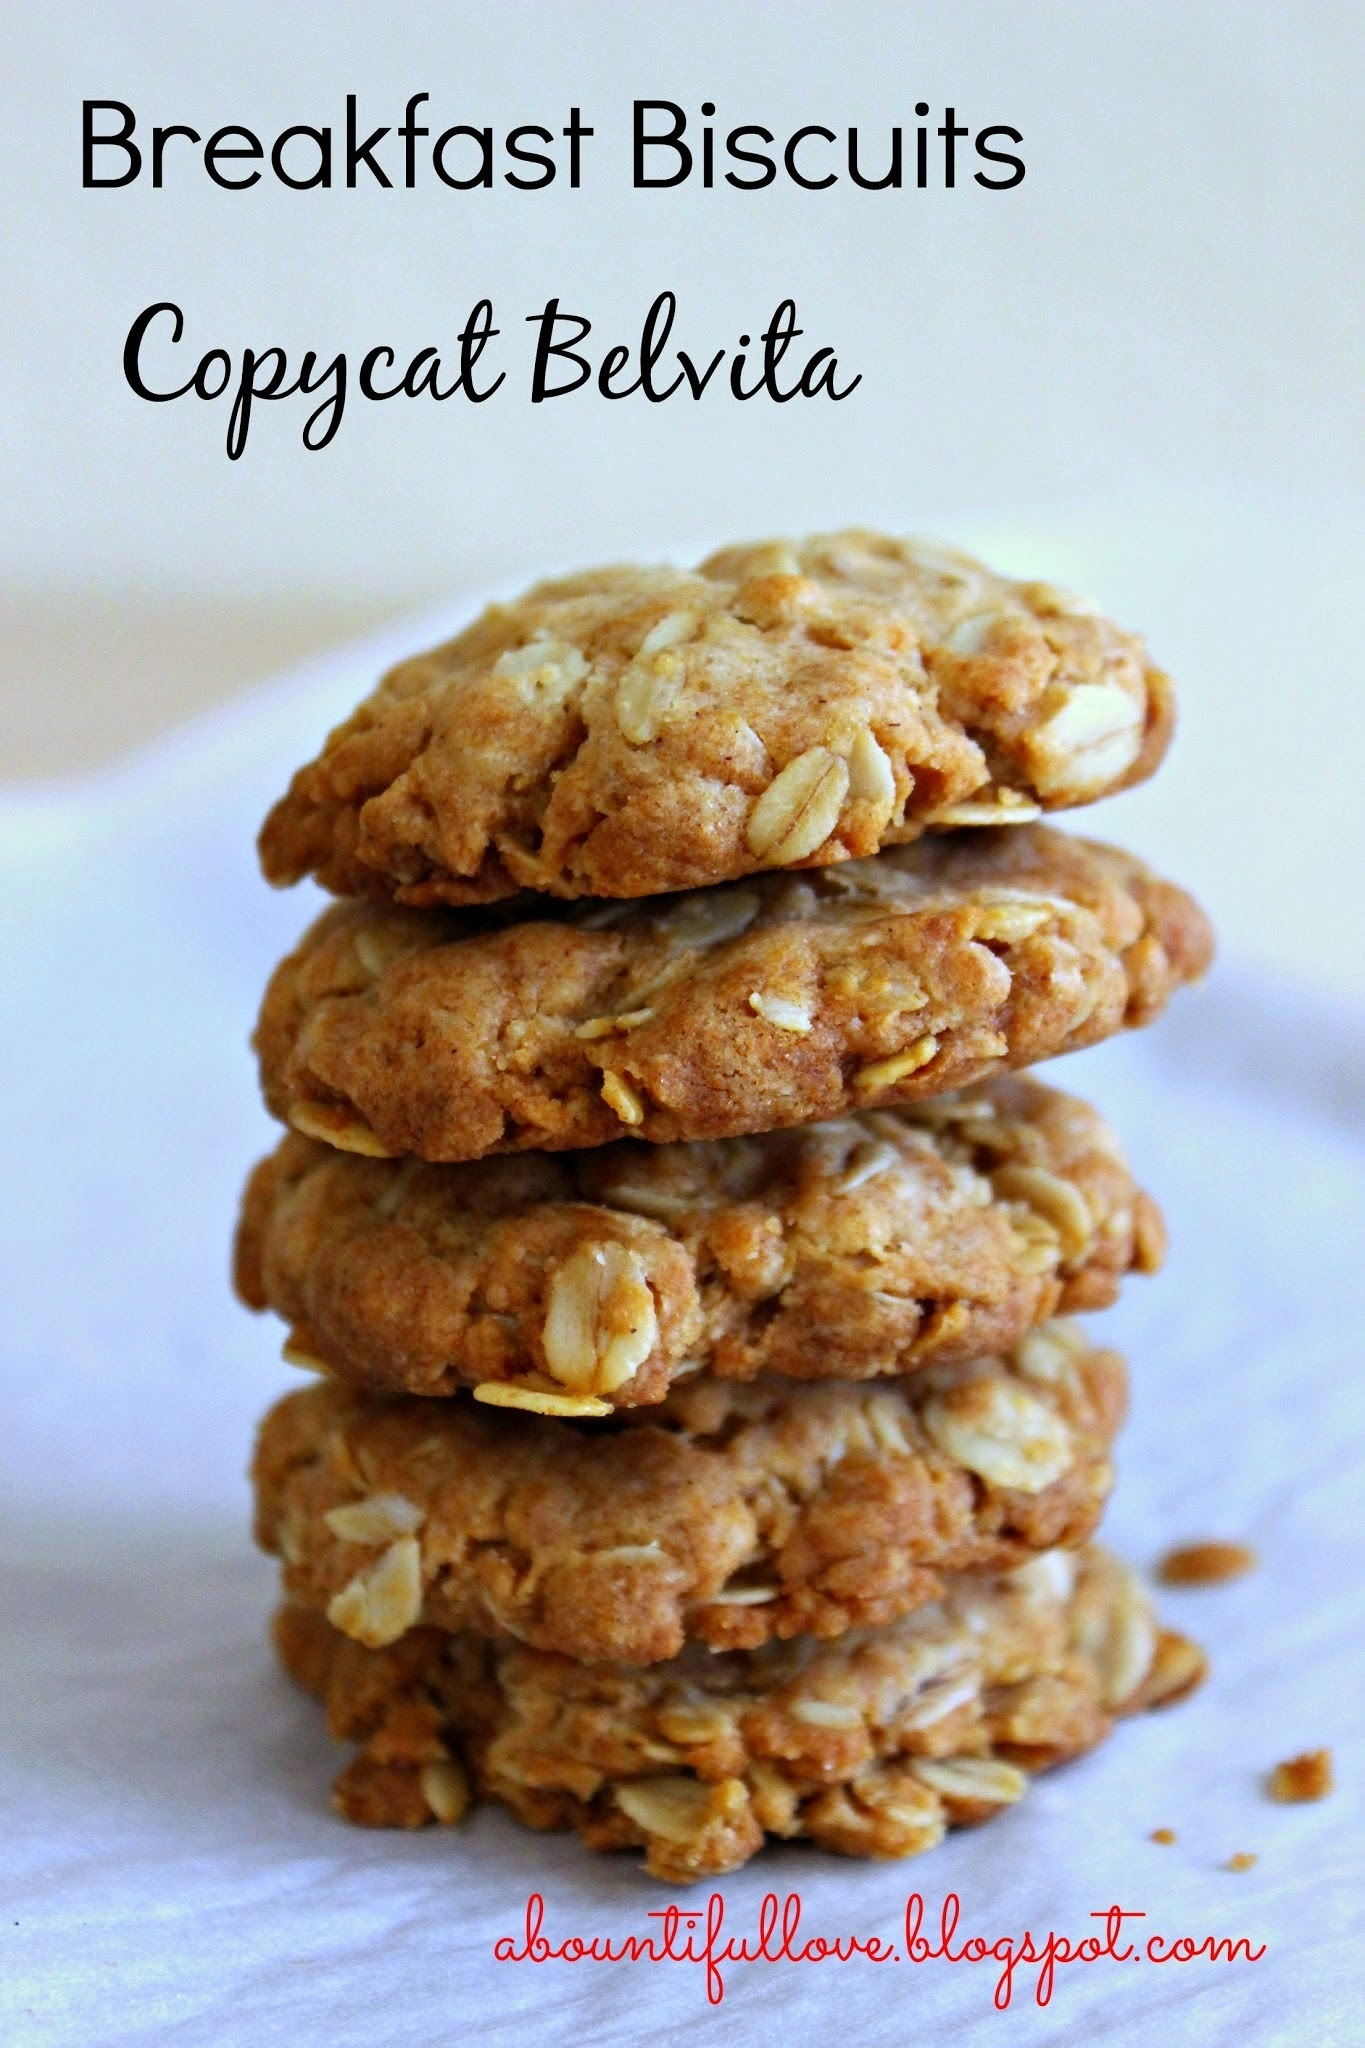 Breakfast Biscuits Copycat Belvita